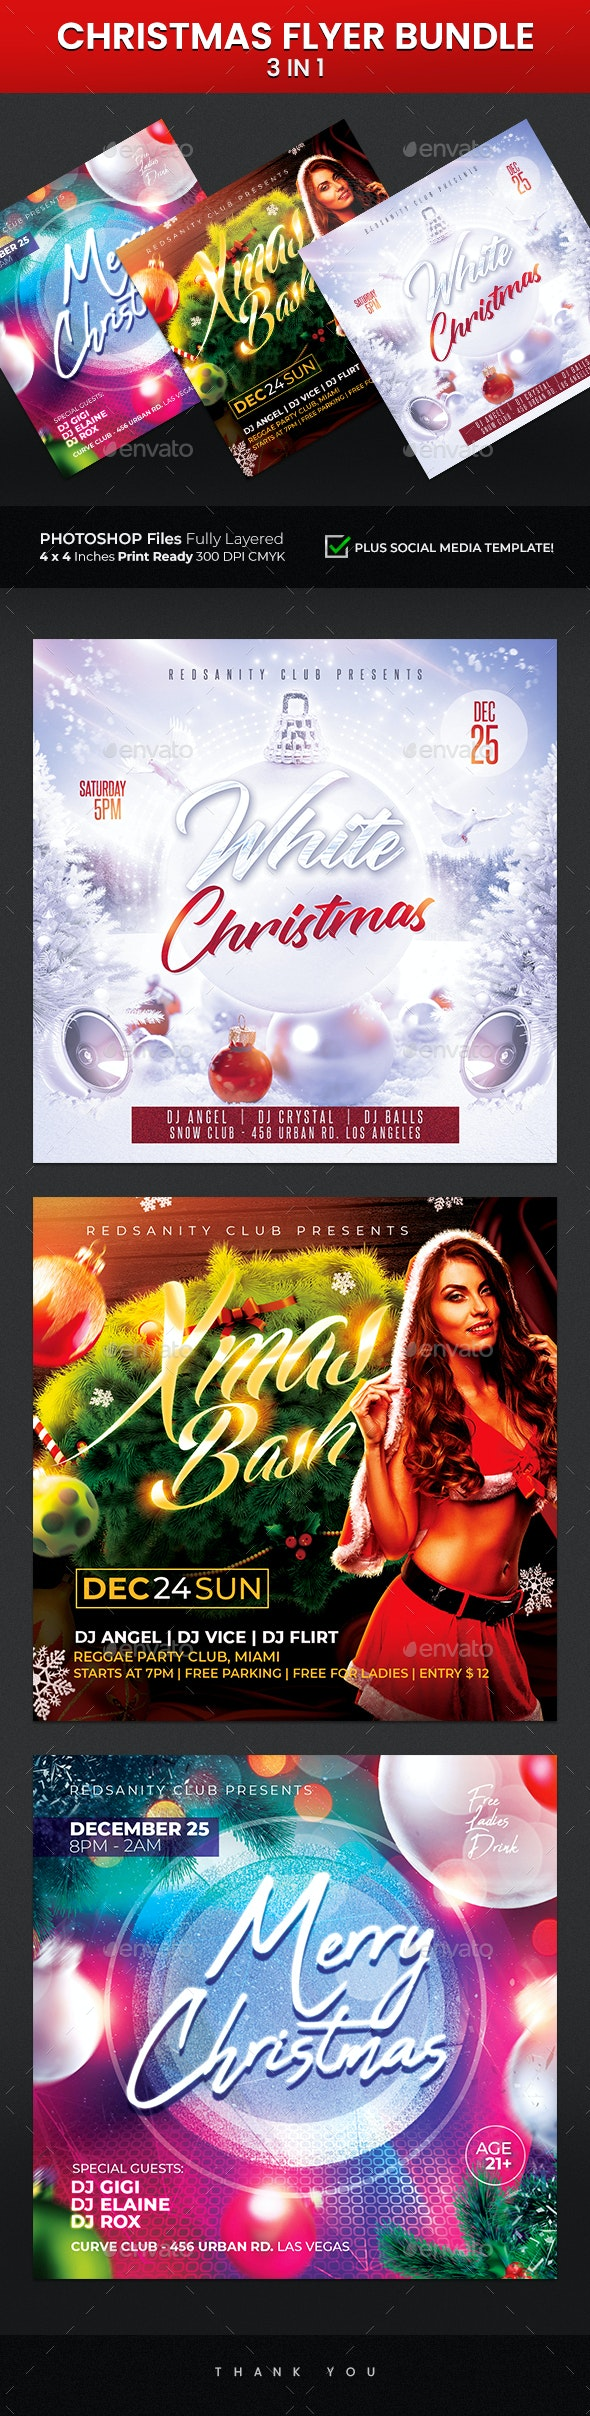 Christmas Flyer Bundle 3 in 1 - Holidays Events